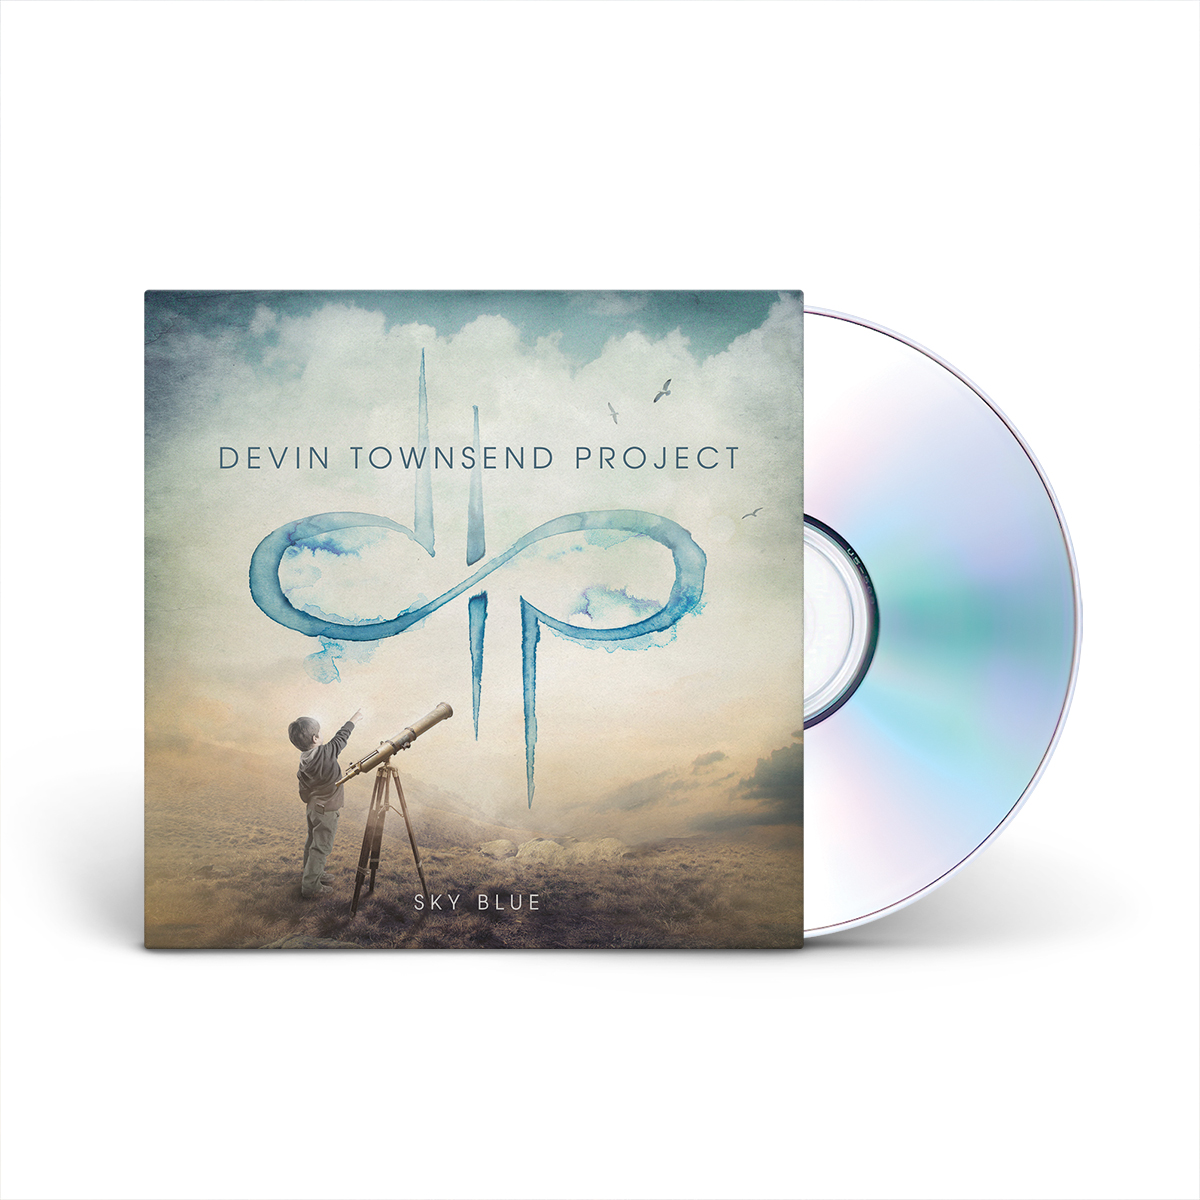 Devin Townsend Project - Sky Blue (stand-alone version 2015) CD